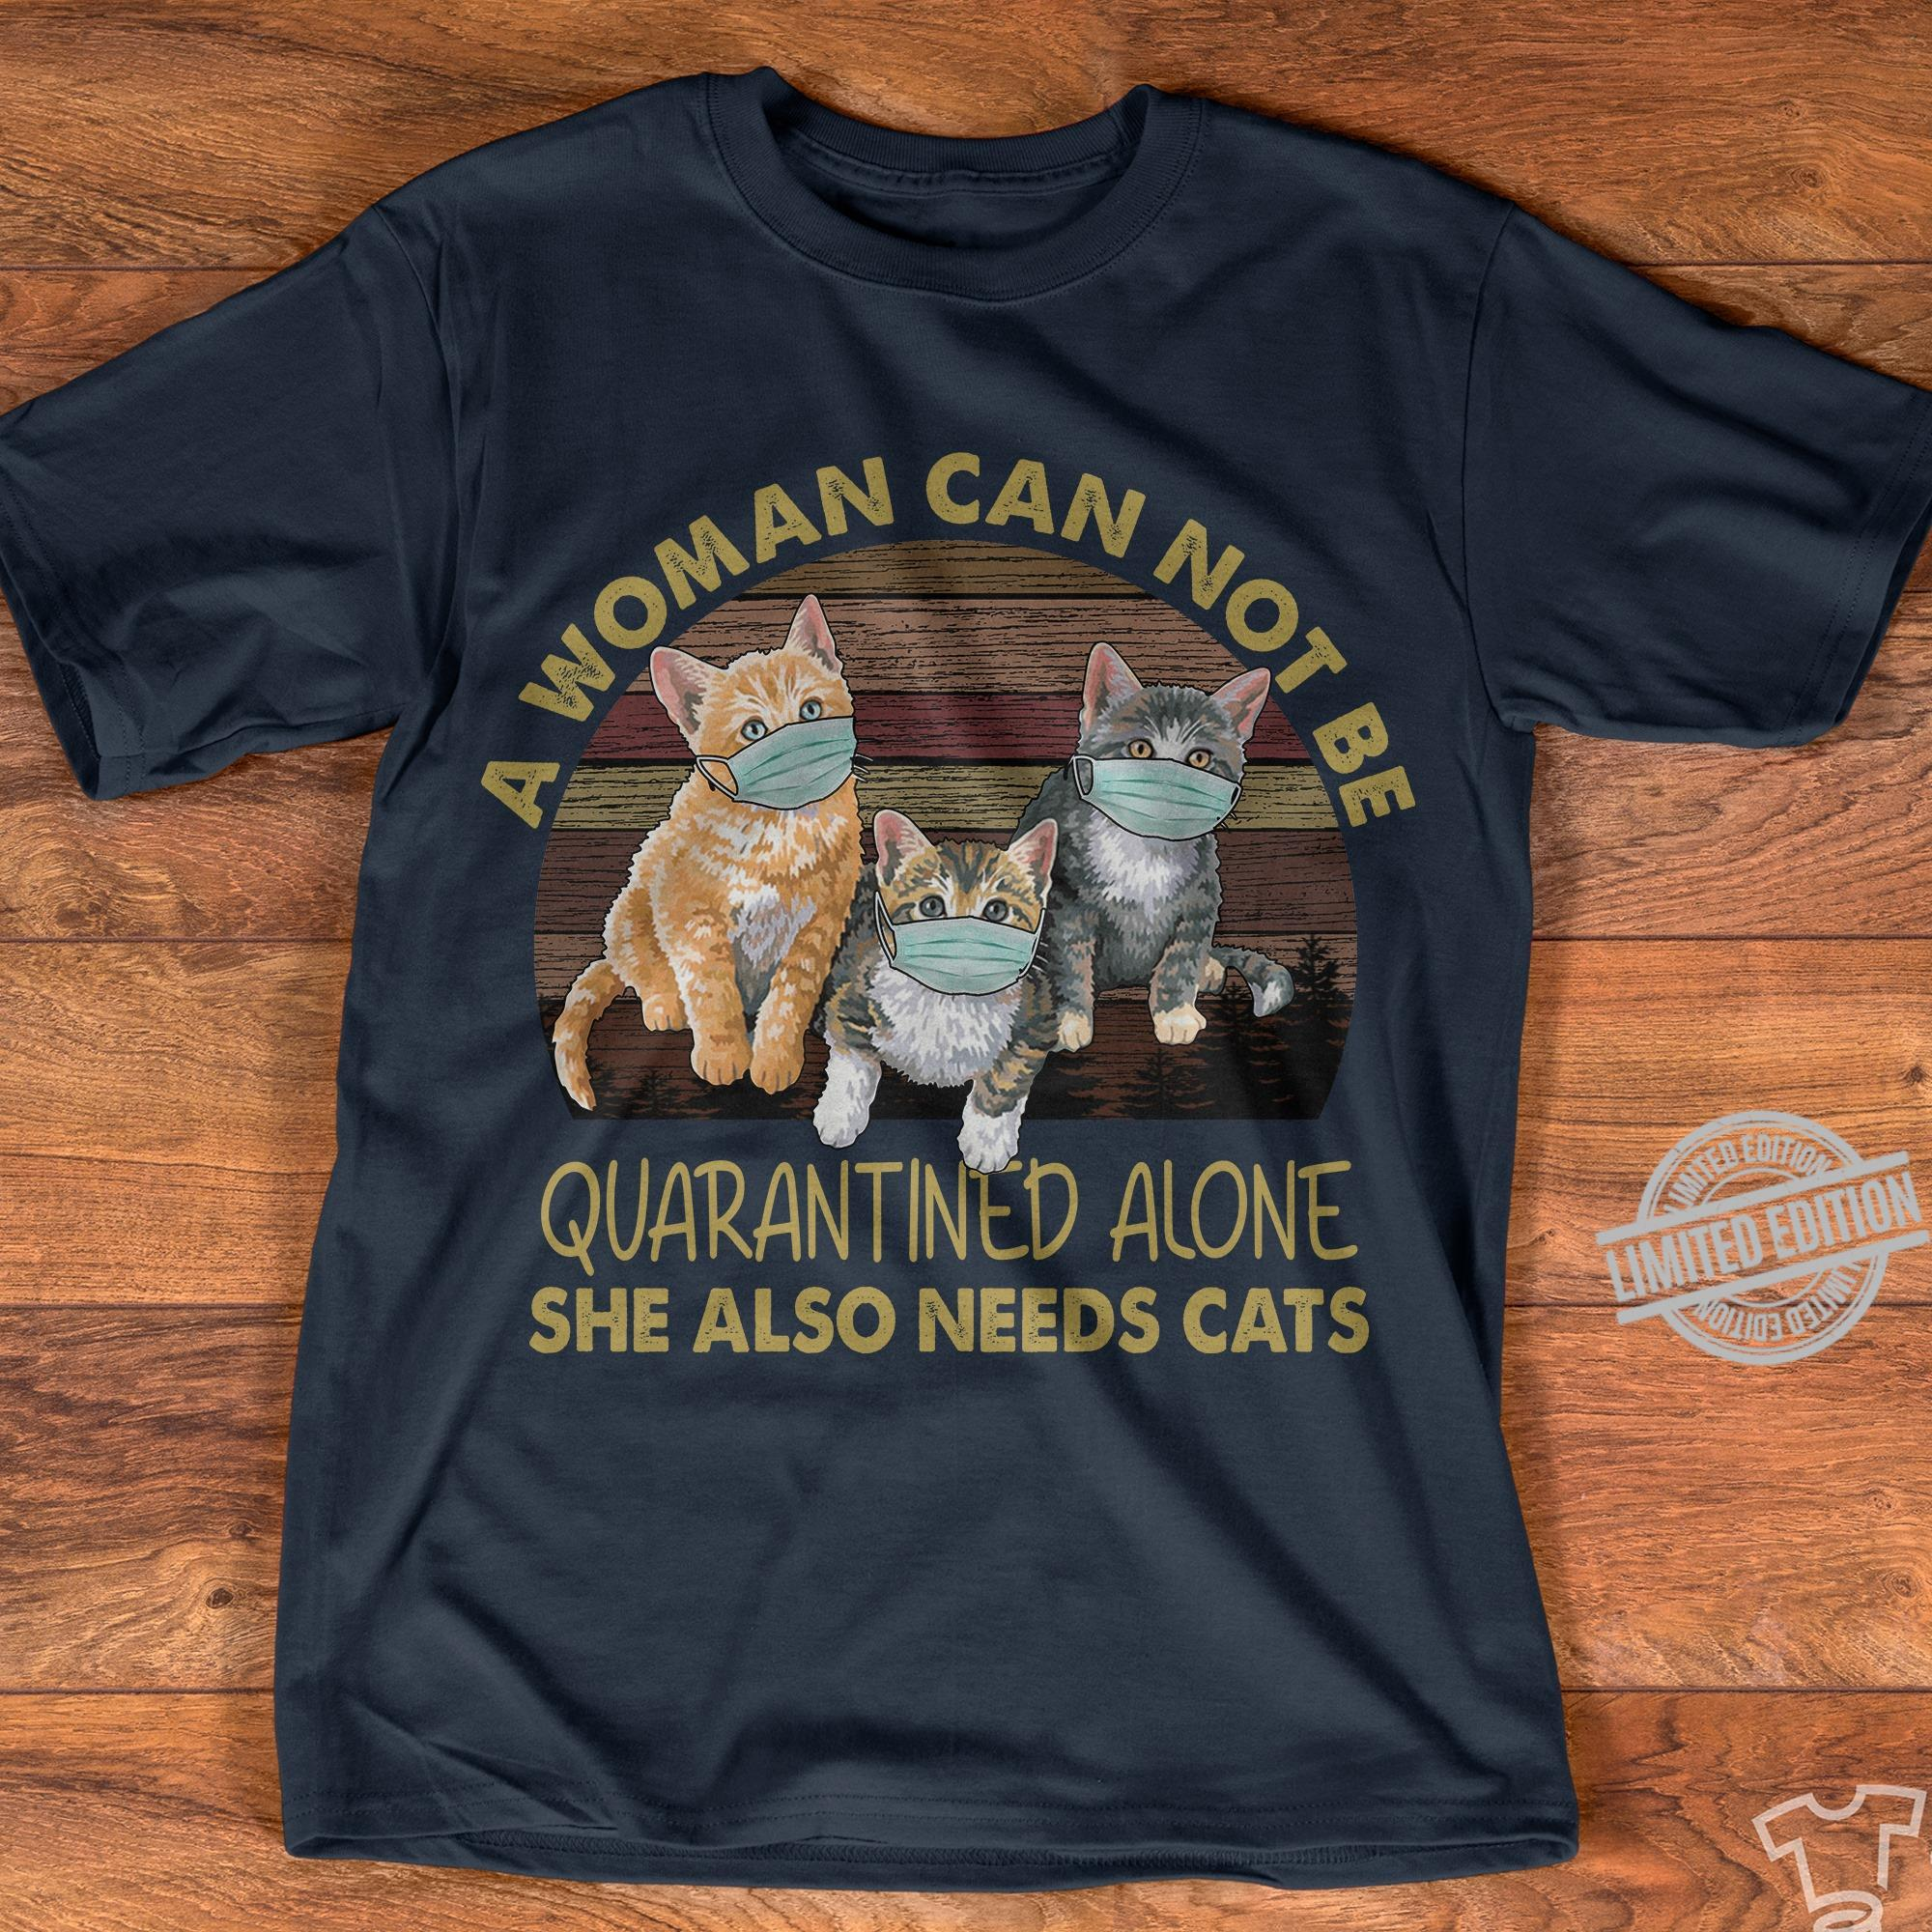 A Woman Can Not Be Quarantined Alone She Also Needs Cats Shirt